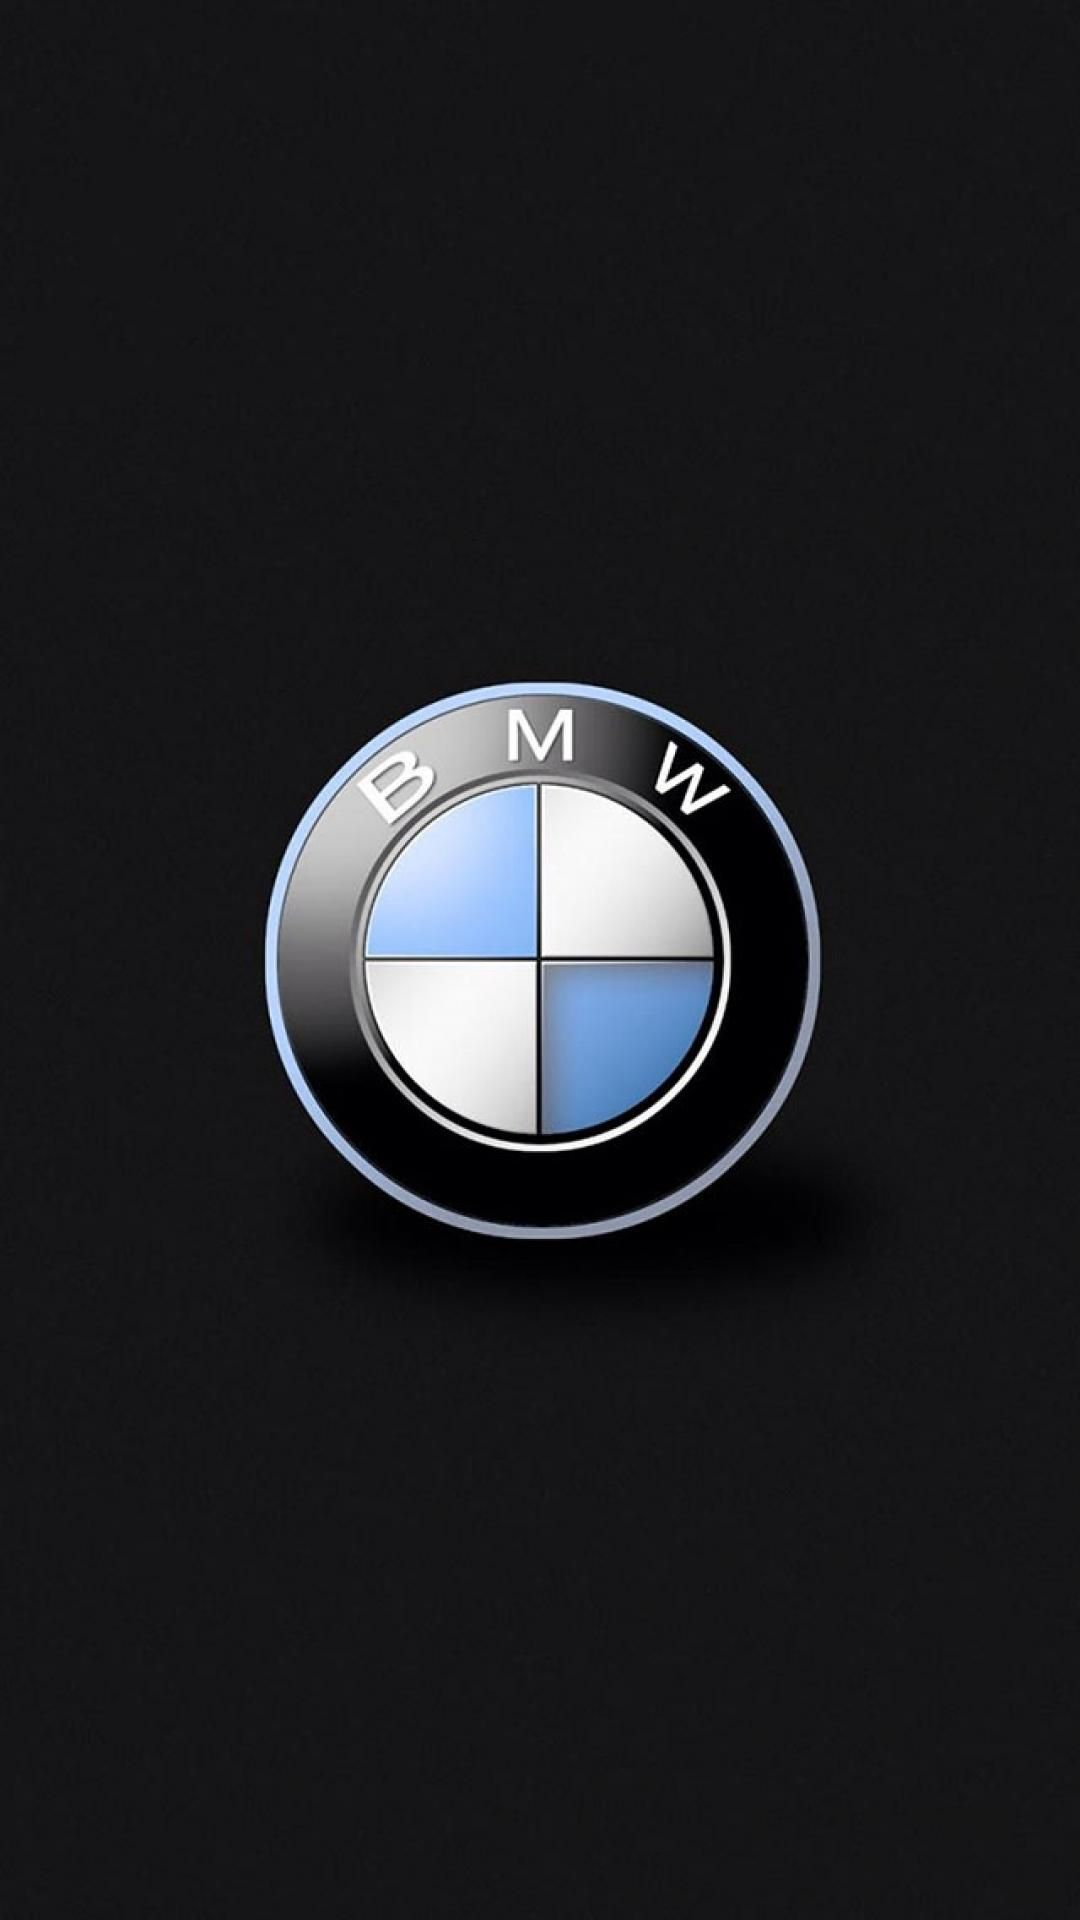 Pin By Lifelinequotes On Iphone Wallpaper Bmw Iphone